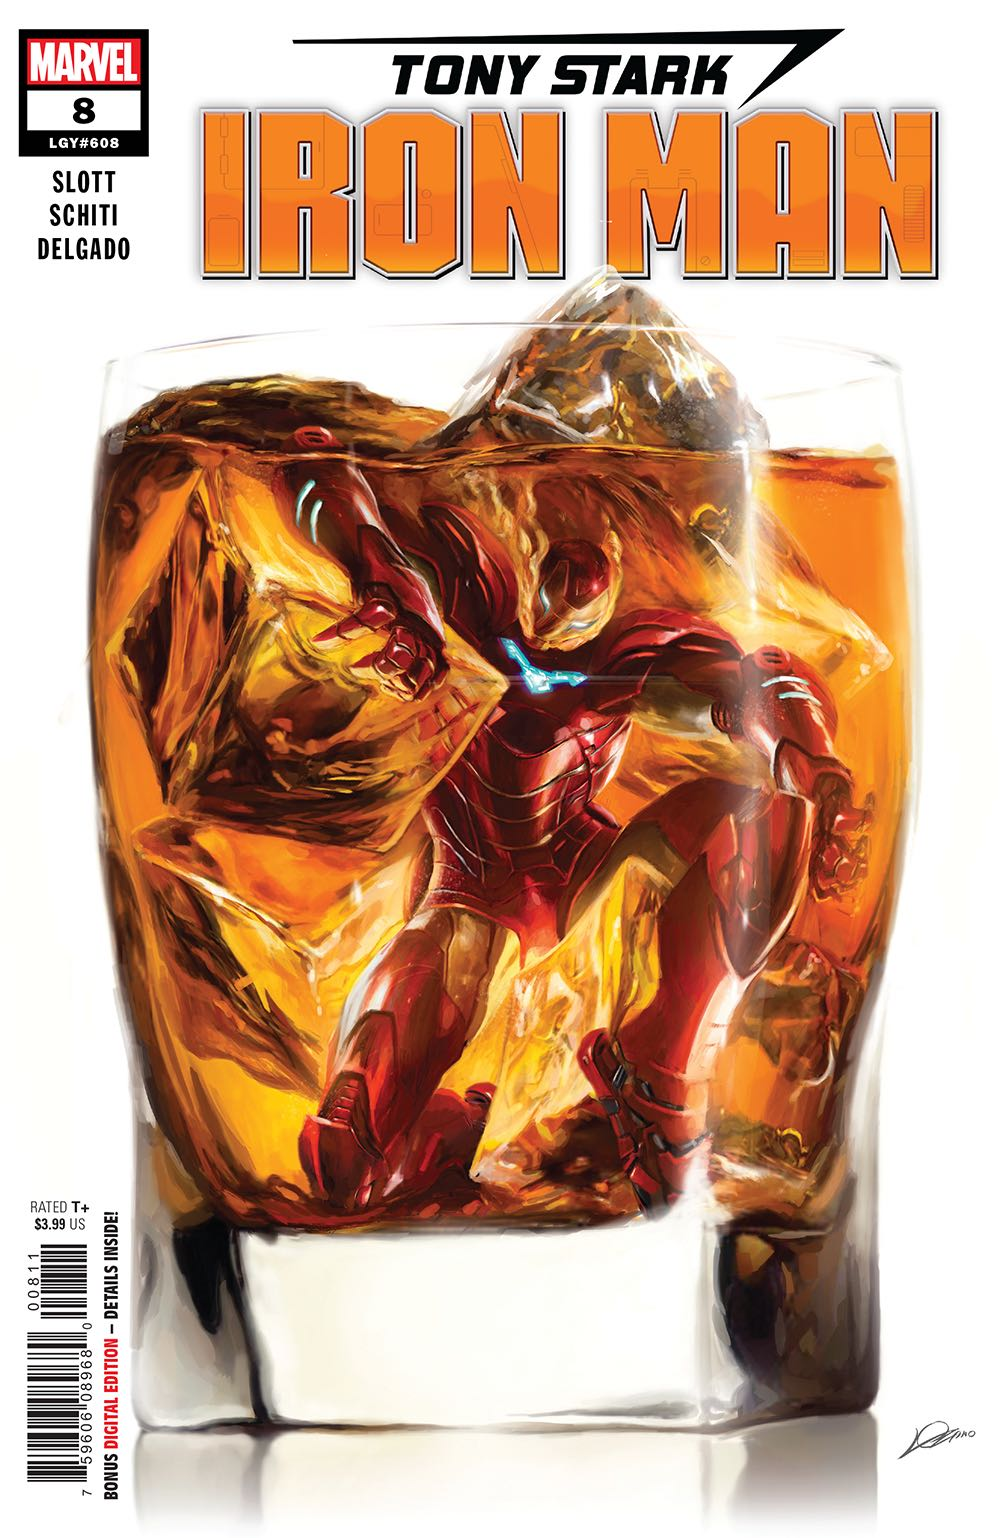 Episode 38 Cover of the Week! - (Marvel) Tony Stark Iron Man #8Cover by Alexander LozanoWritten by Dan SlottIllustrated by Valerio SchitiDid the Content Match the Drapes? - UNR